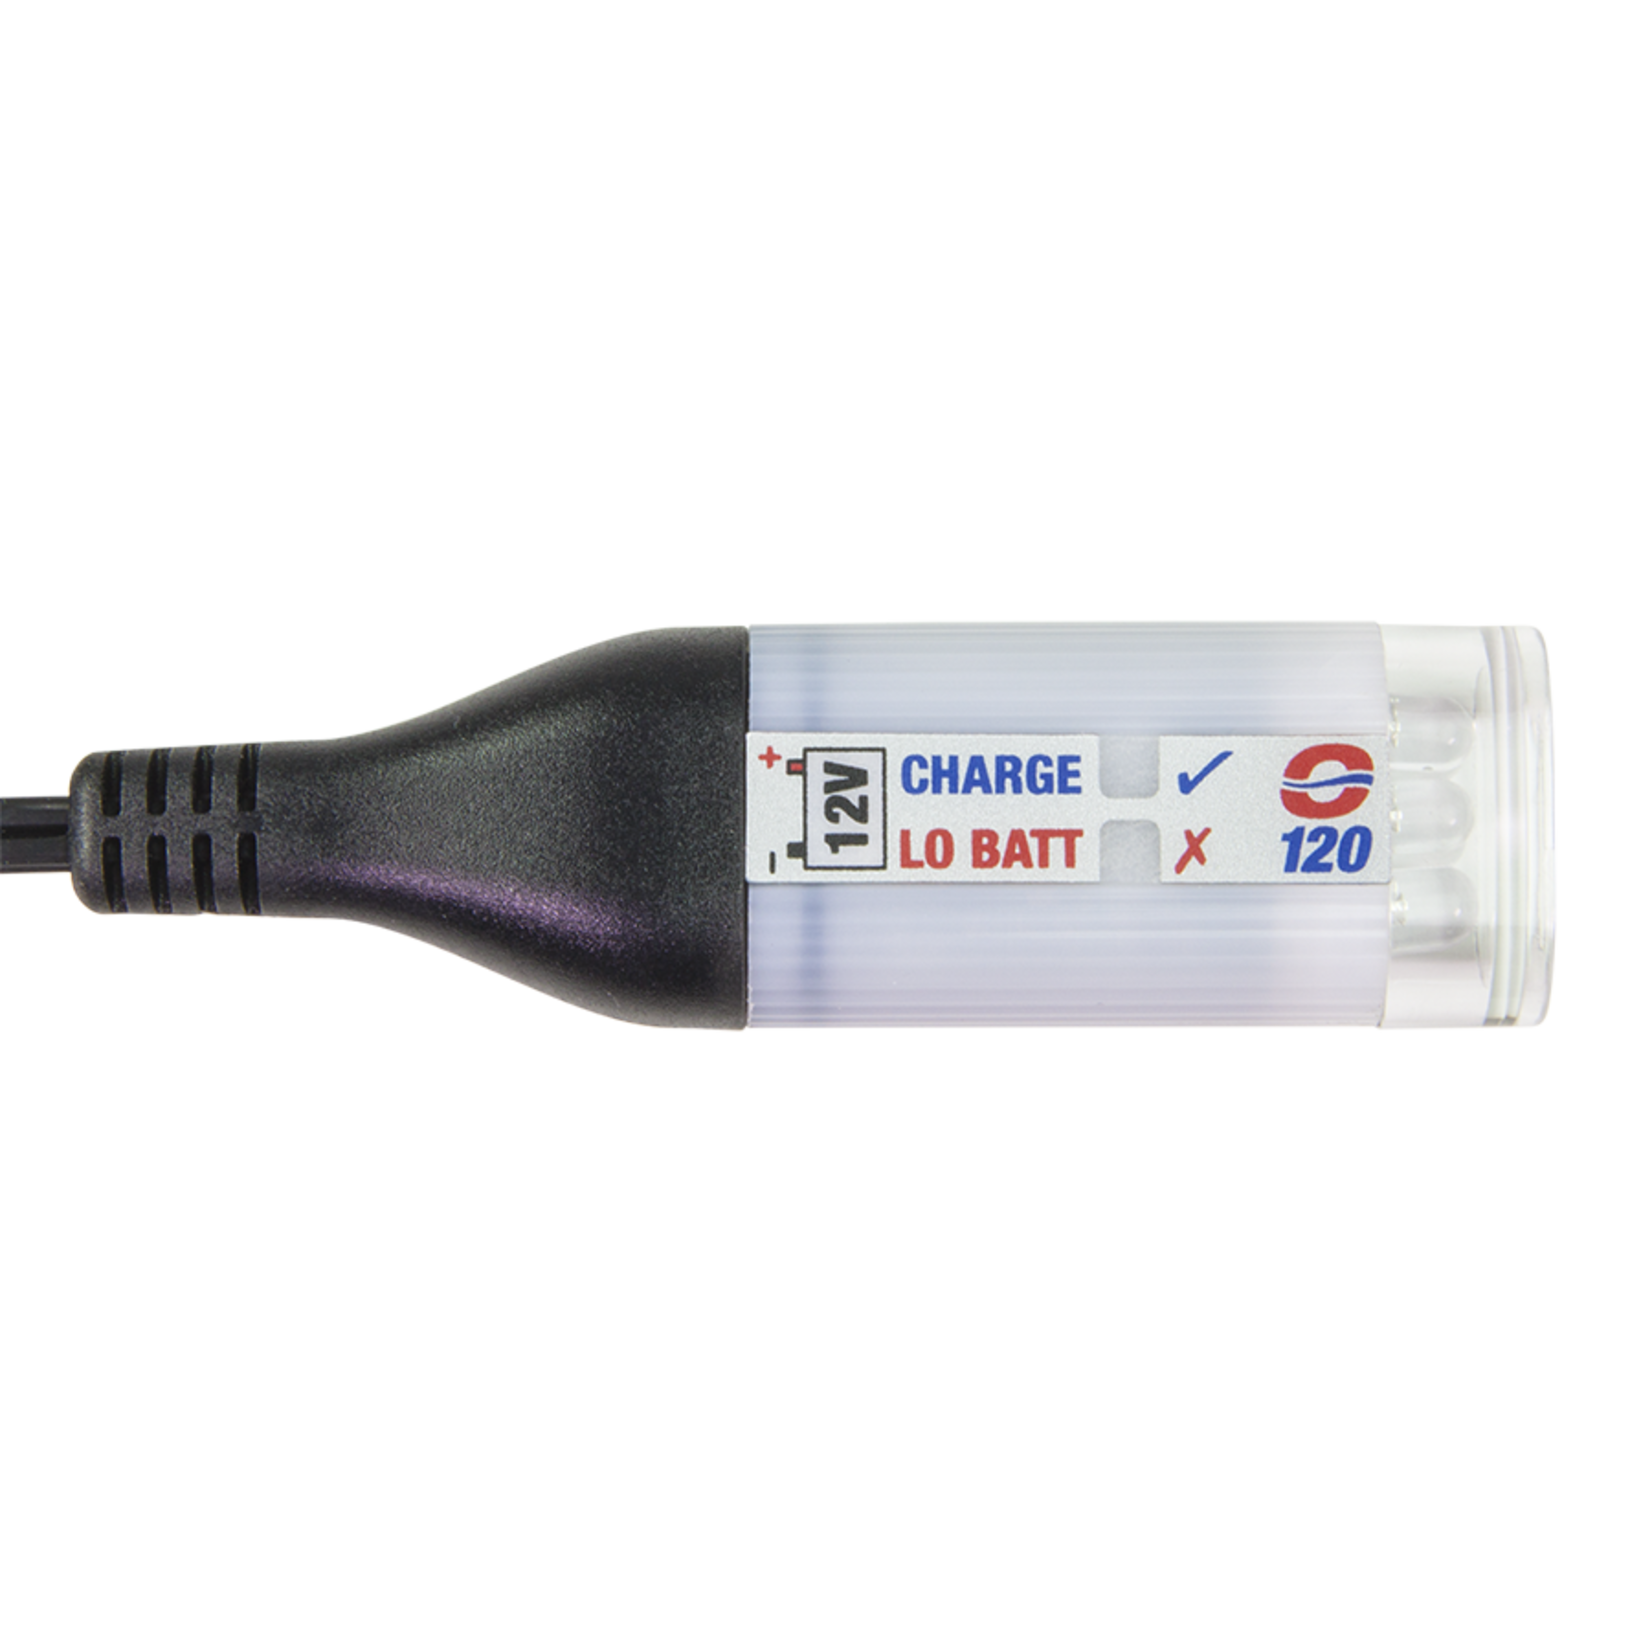 OptiMate OptiMate O-120 - LED